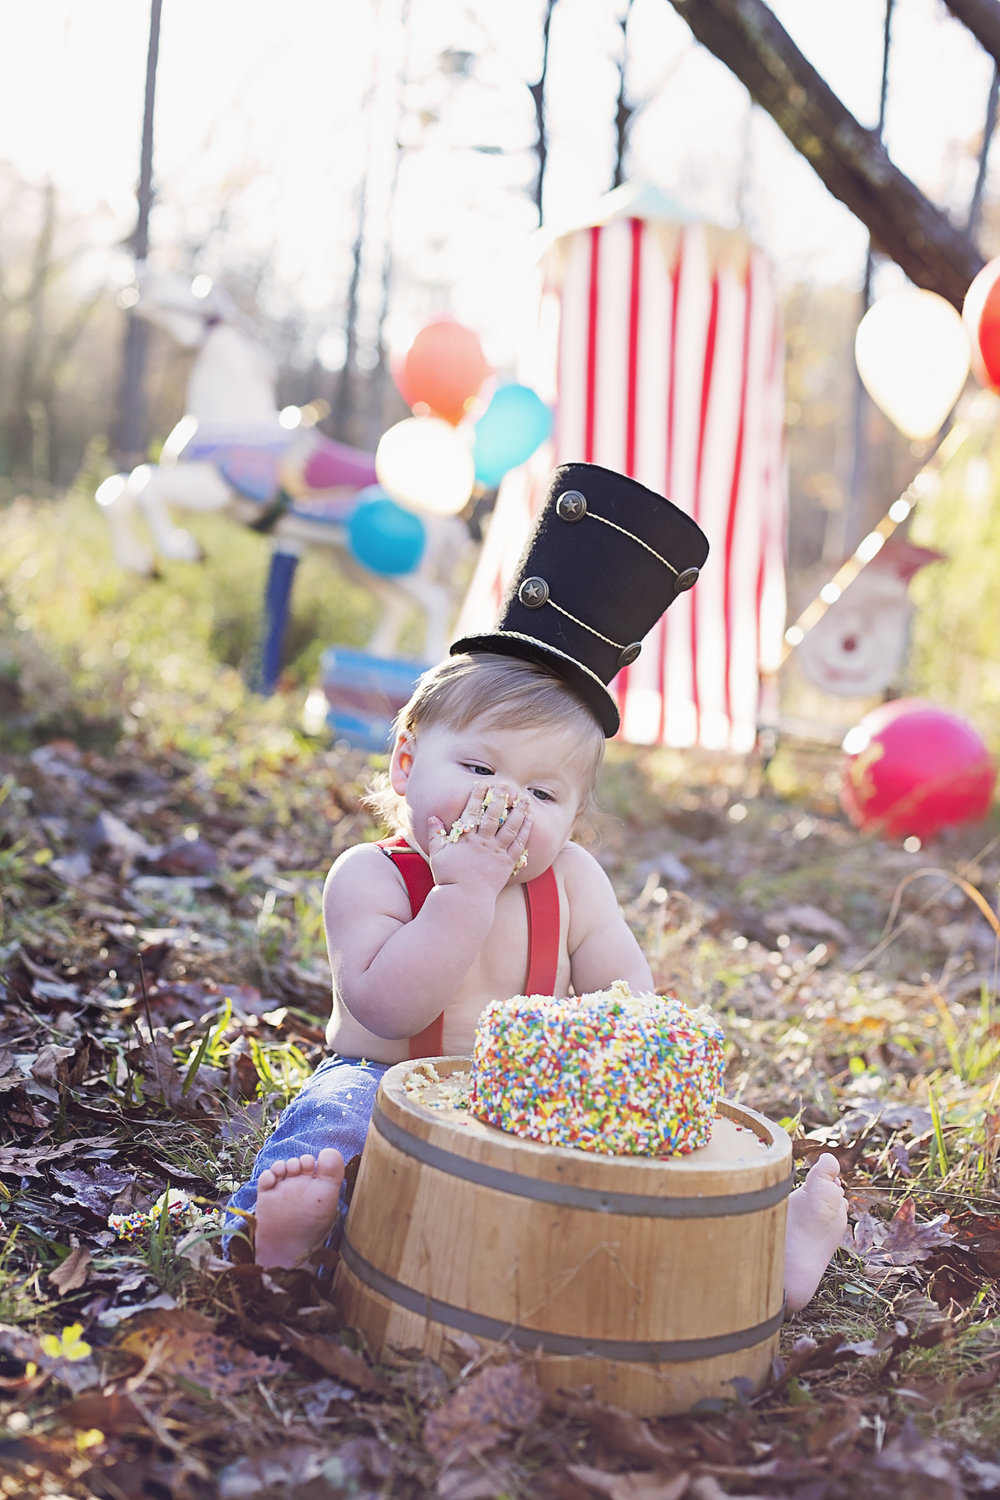 """""""We just had our 1 year cake smash for Davis and I cannot wait to see the photographs she took! Lindsey and Ethan are so accommodating and do whatever it takes to go above and beyond our expectations! Thank you so much from the bottom of my heart for putting up with our crazy crew and all of our shenanigans!""""  - Mollie Price"""